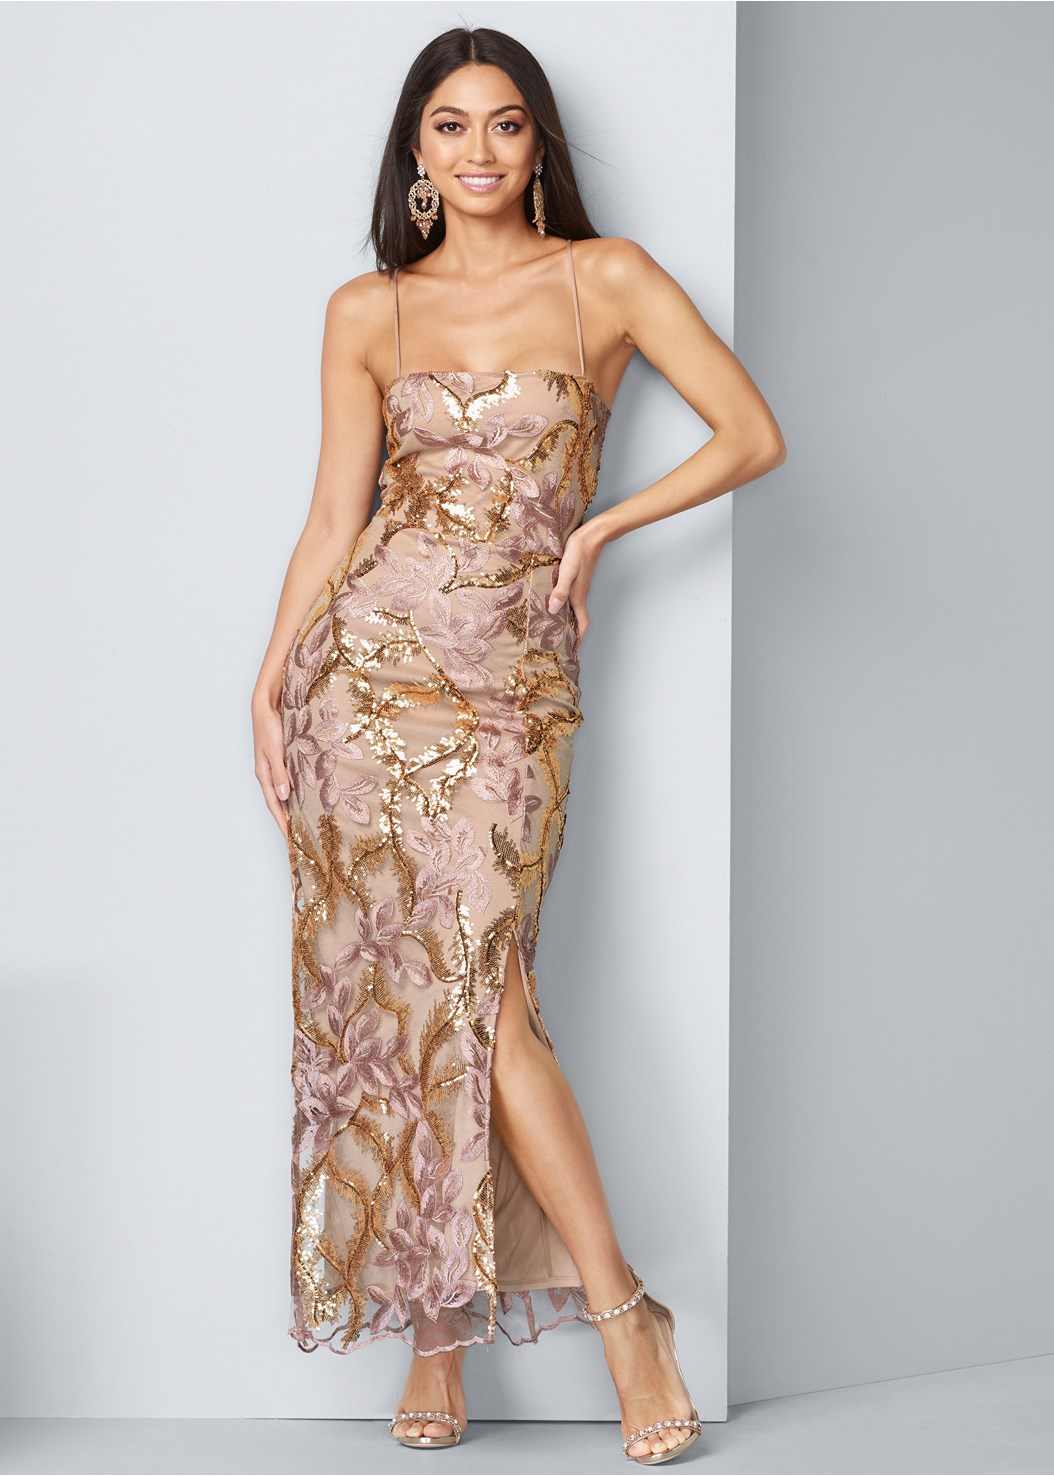 Sequin Floral Gown,Everyday You Strapless Bra,Embellished Heels